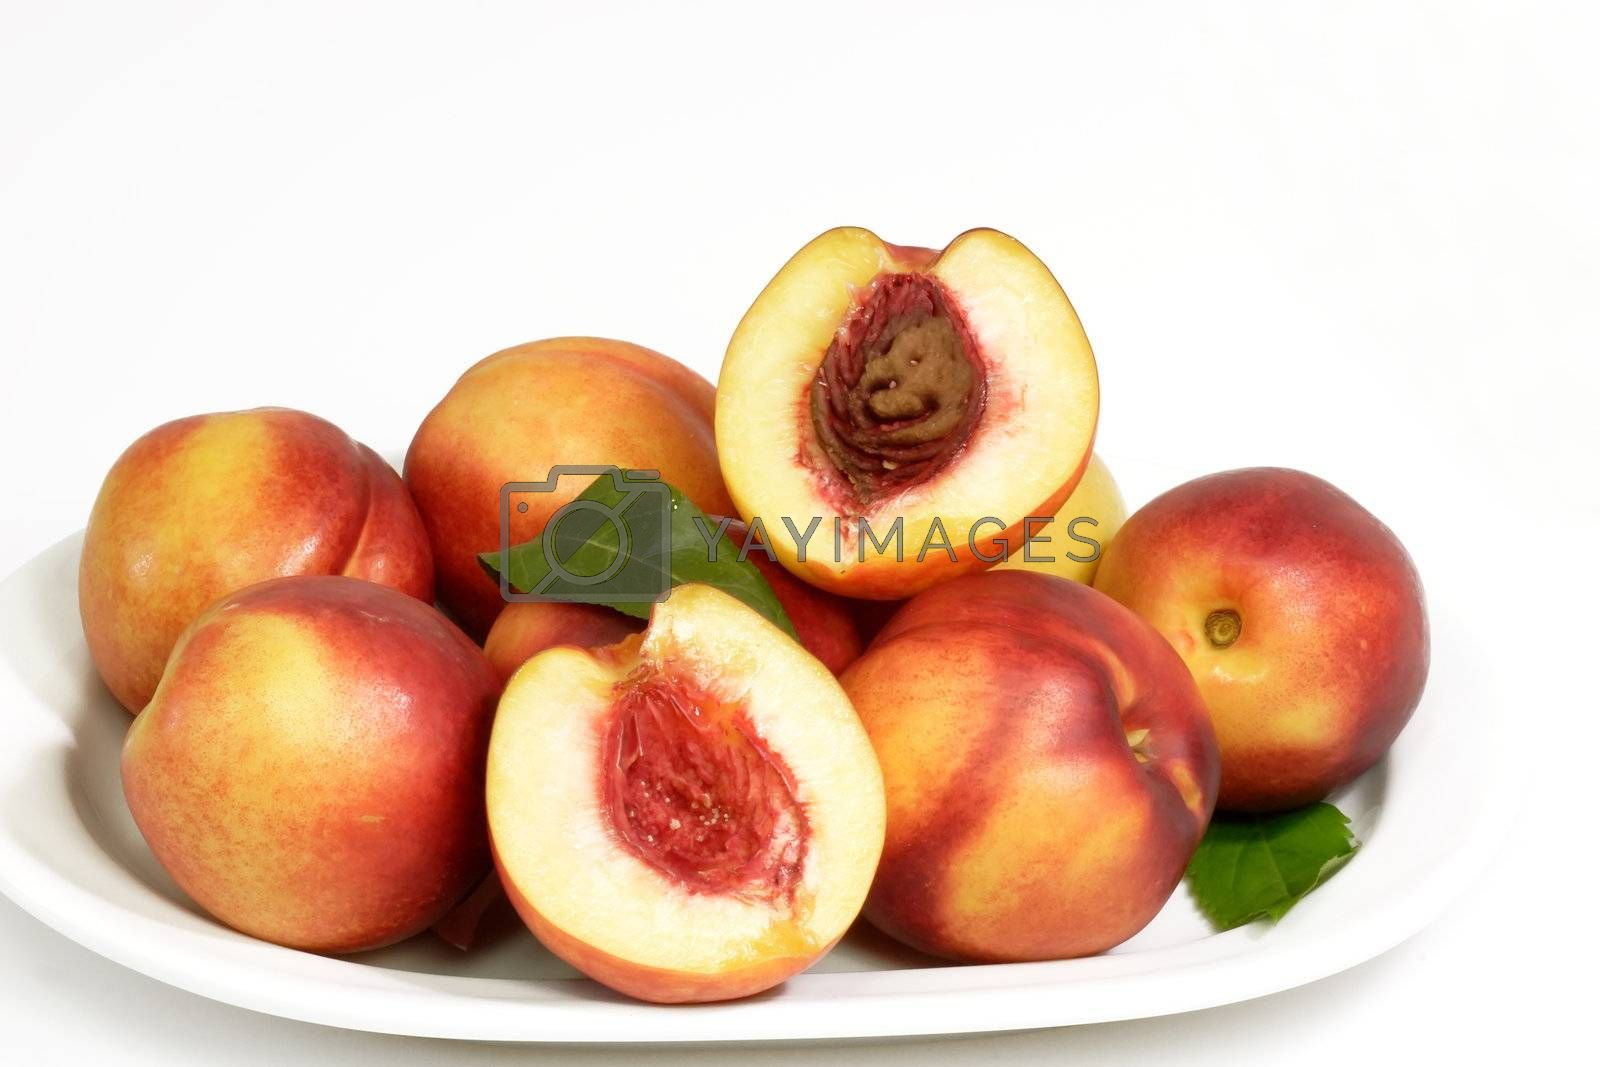 Healthy nectarines by Teamarbeit